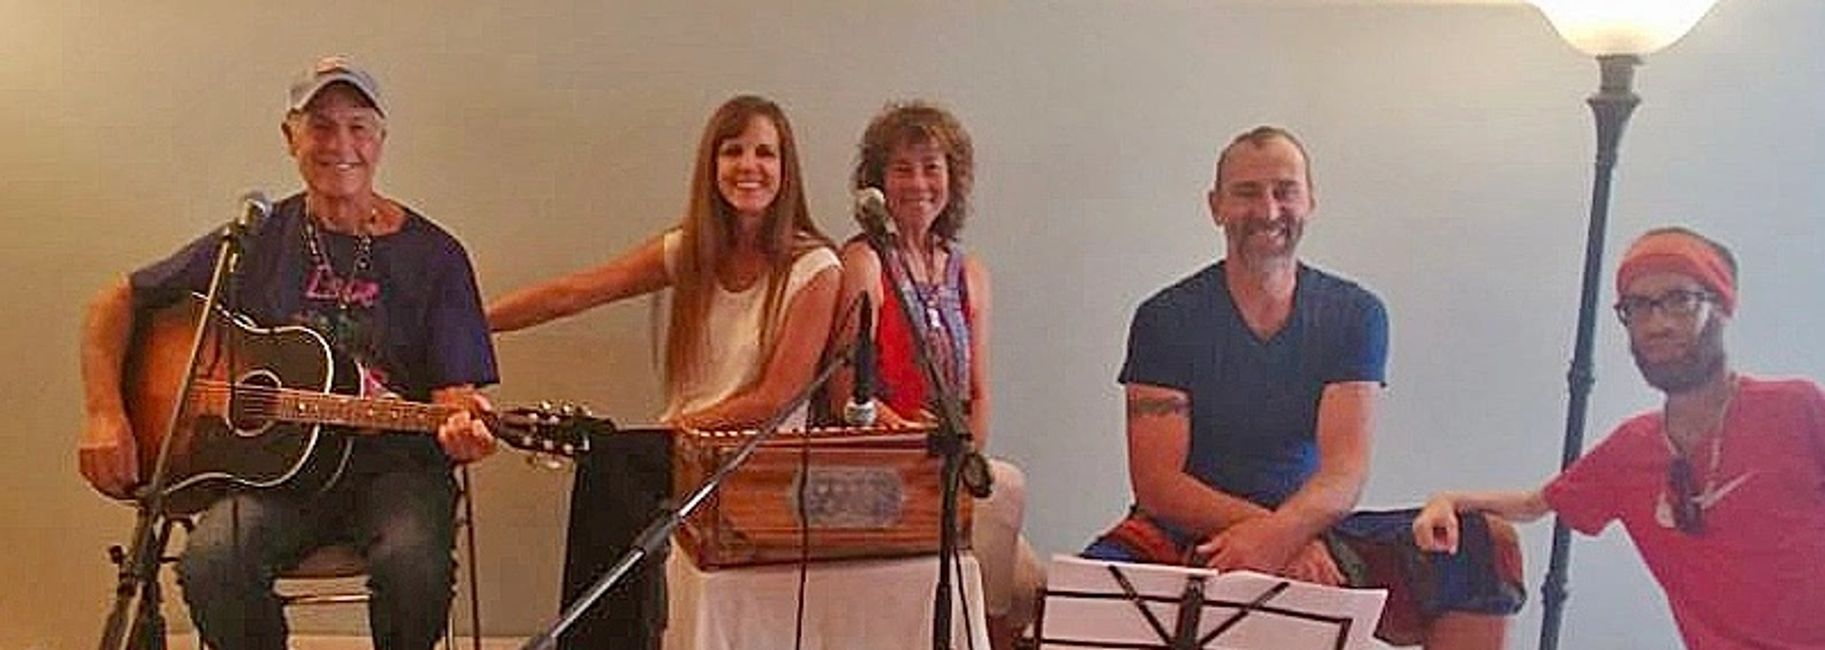 Rockin' Kirtan, the 2nd Sunday of the Month at Rising Tide International, Sarasota.